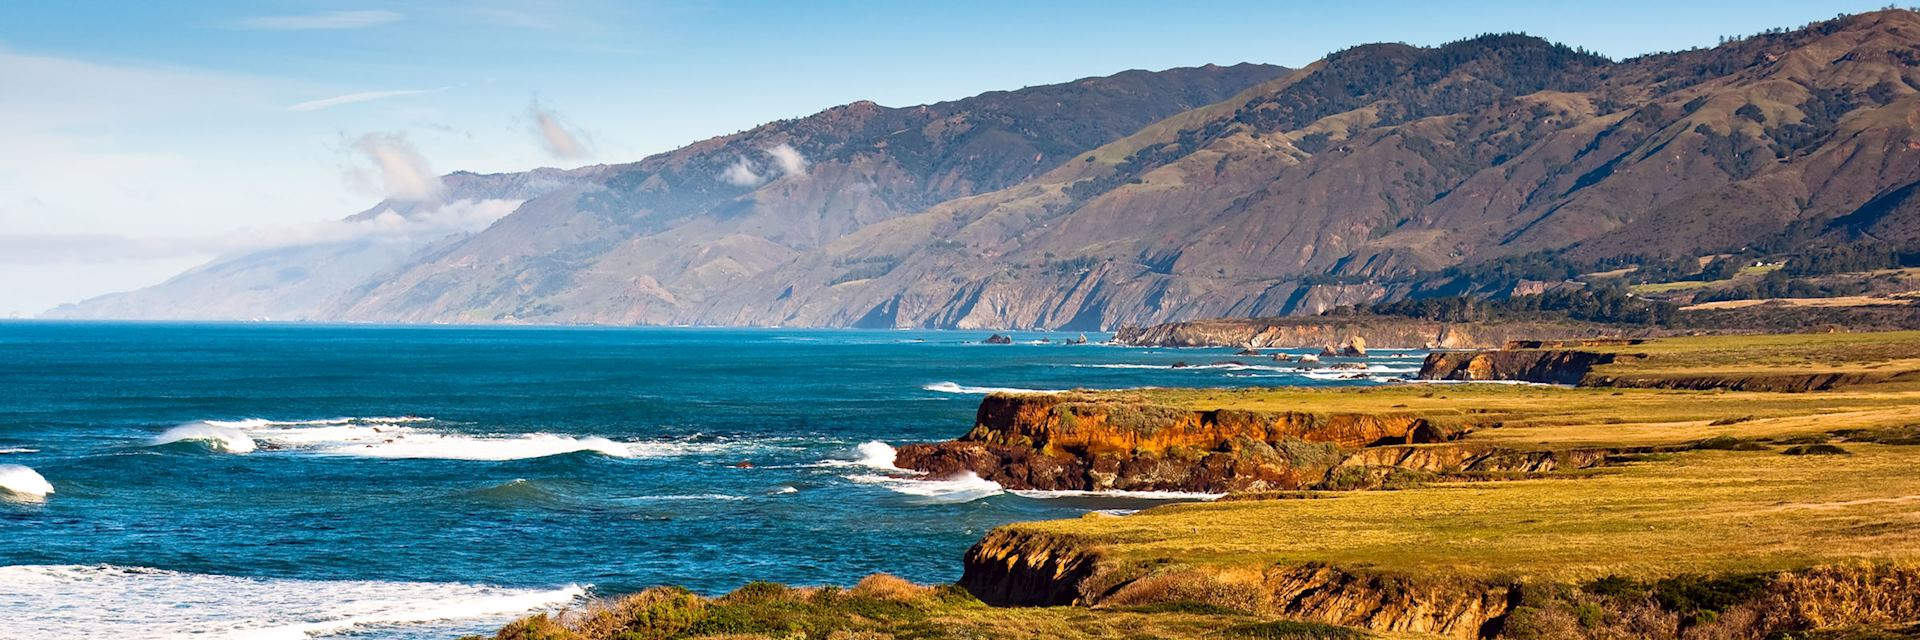 Coastal scenery in Big Sur